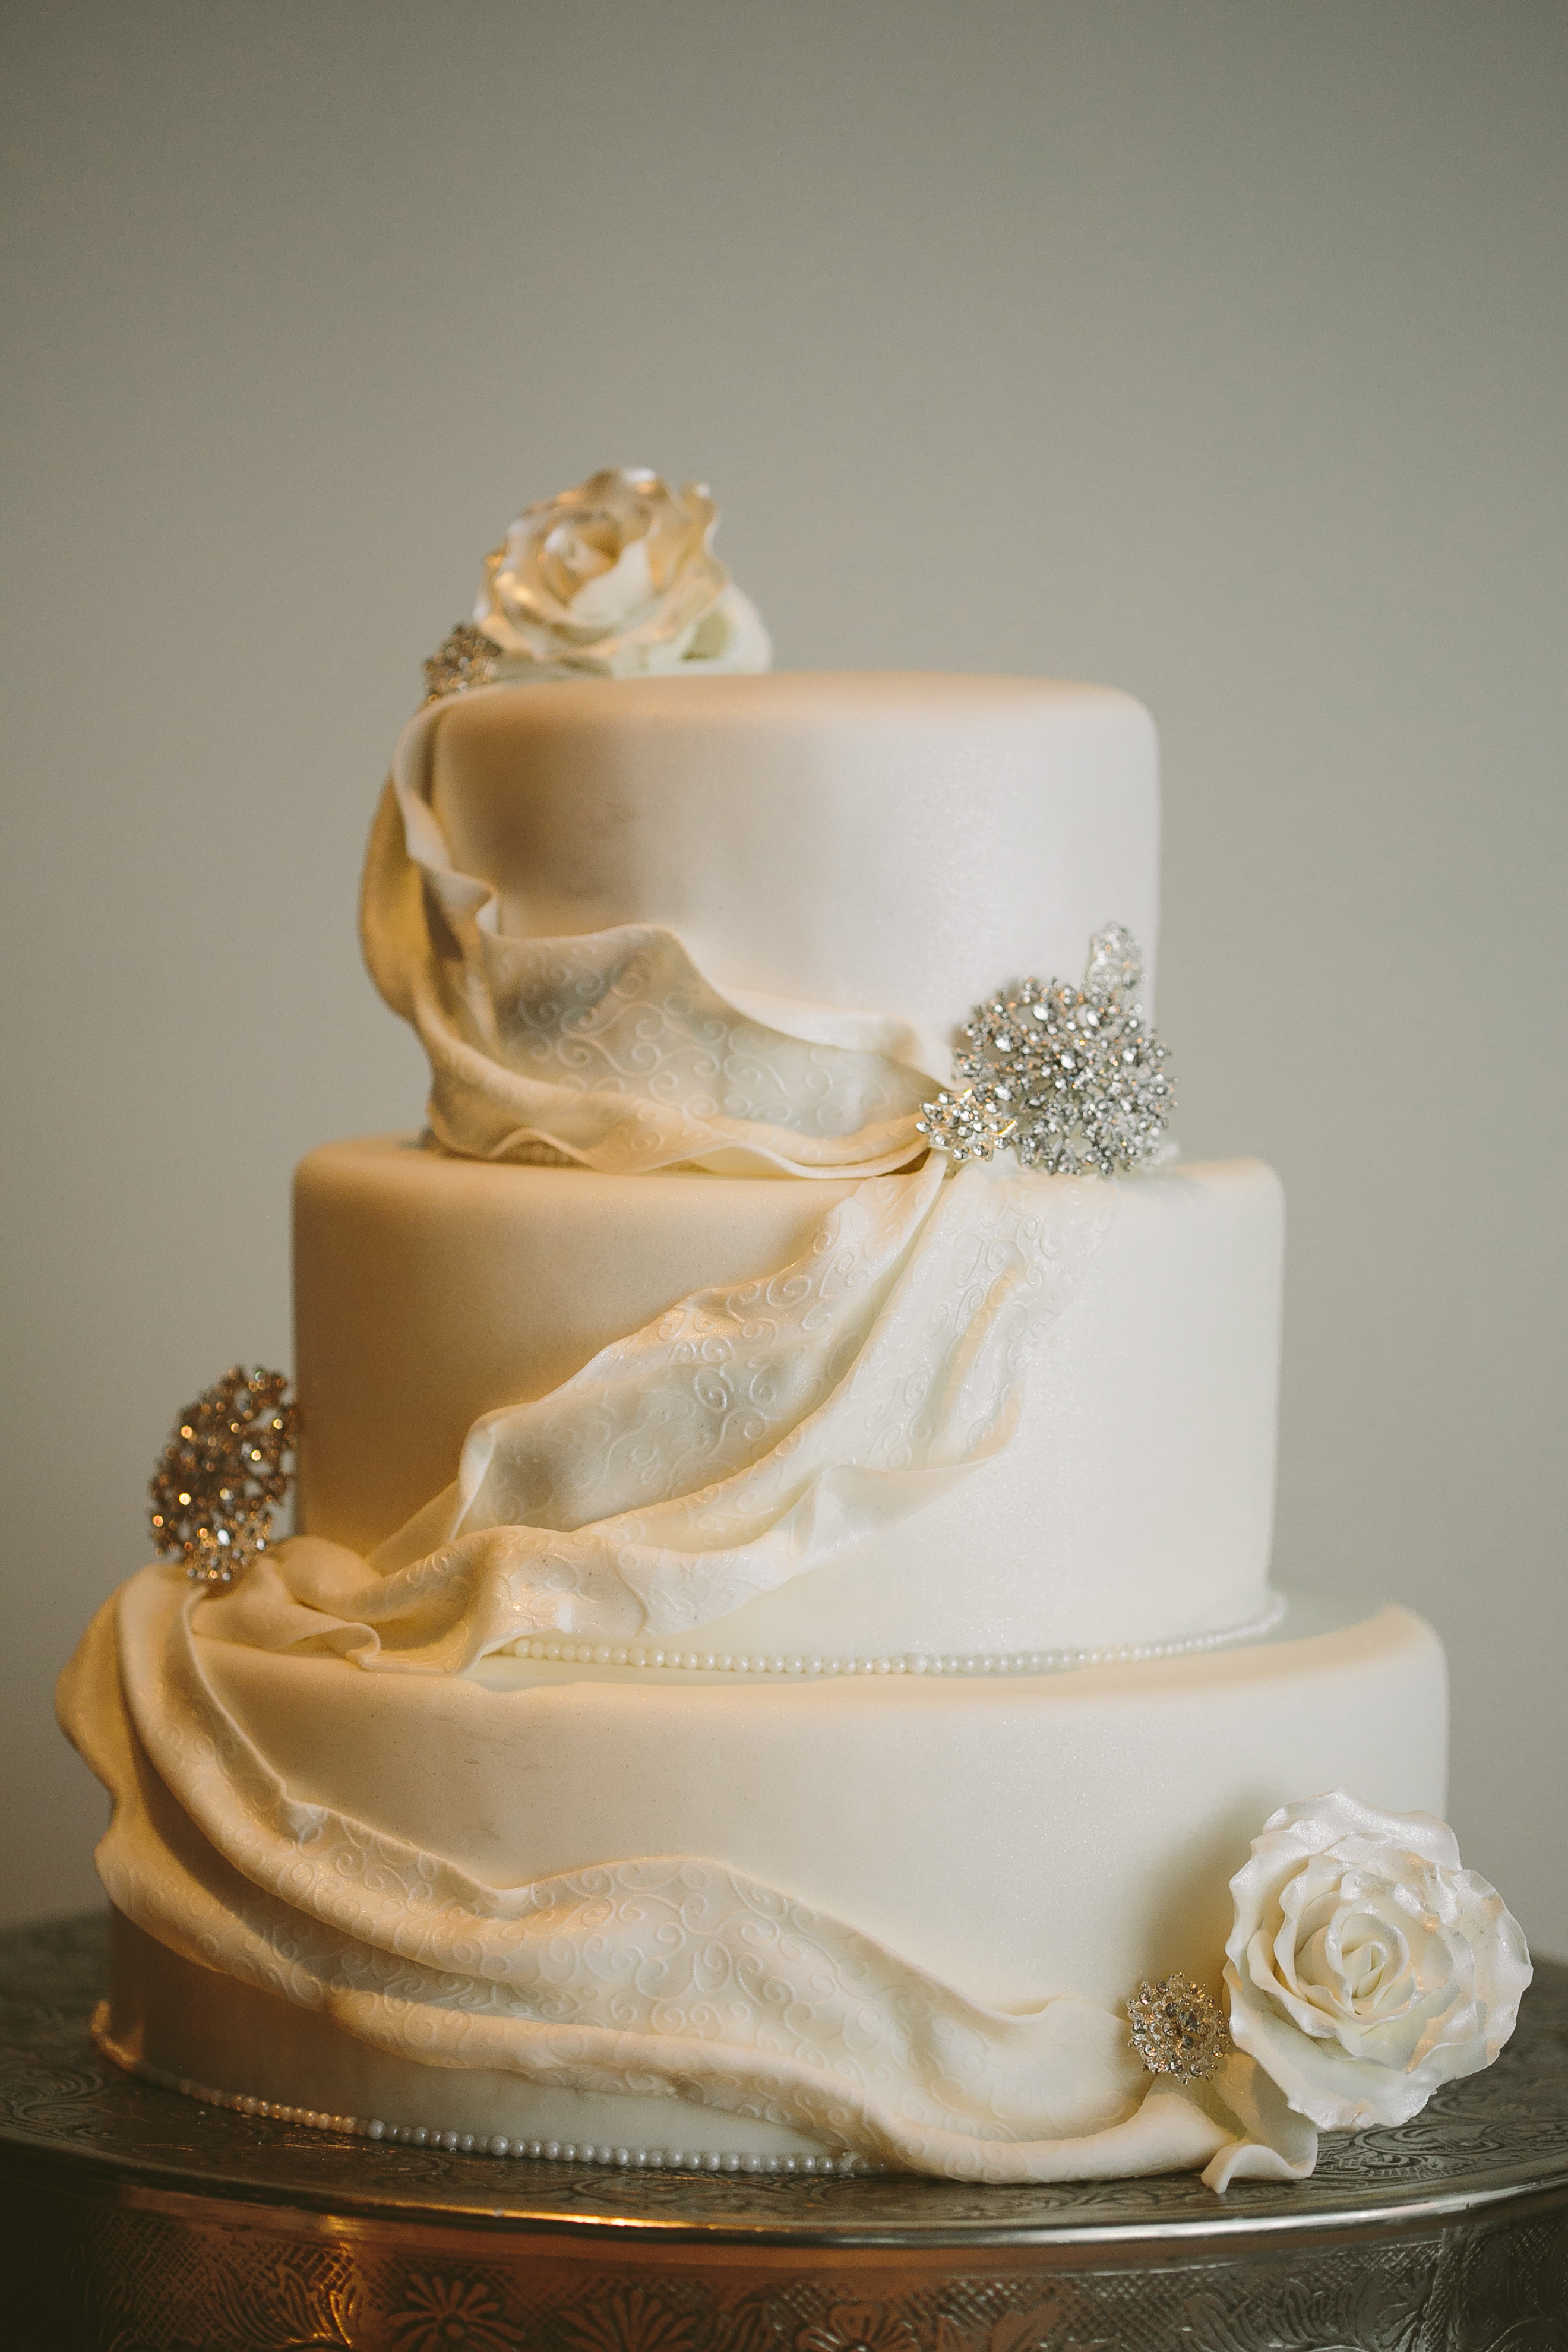 Fondant with Draping